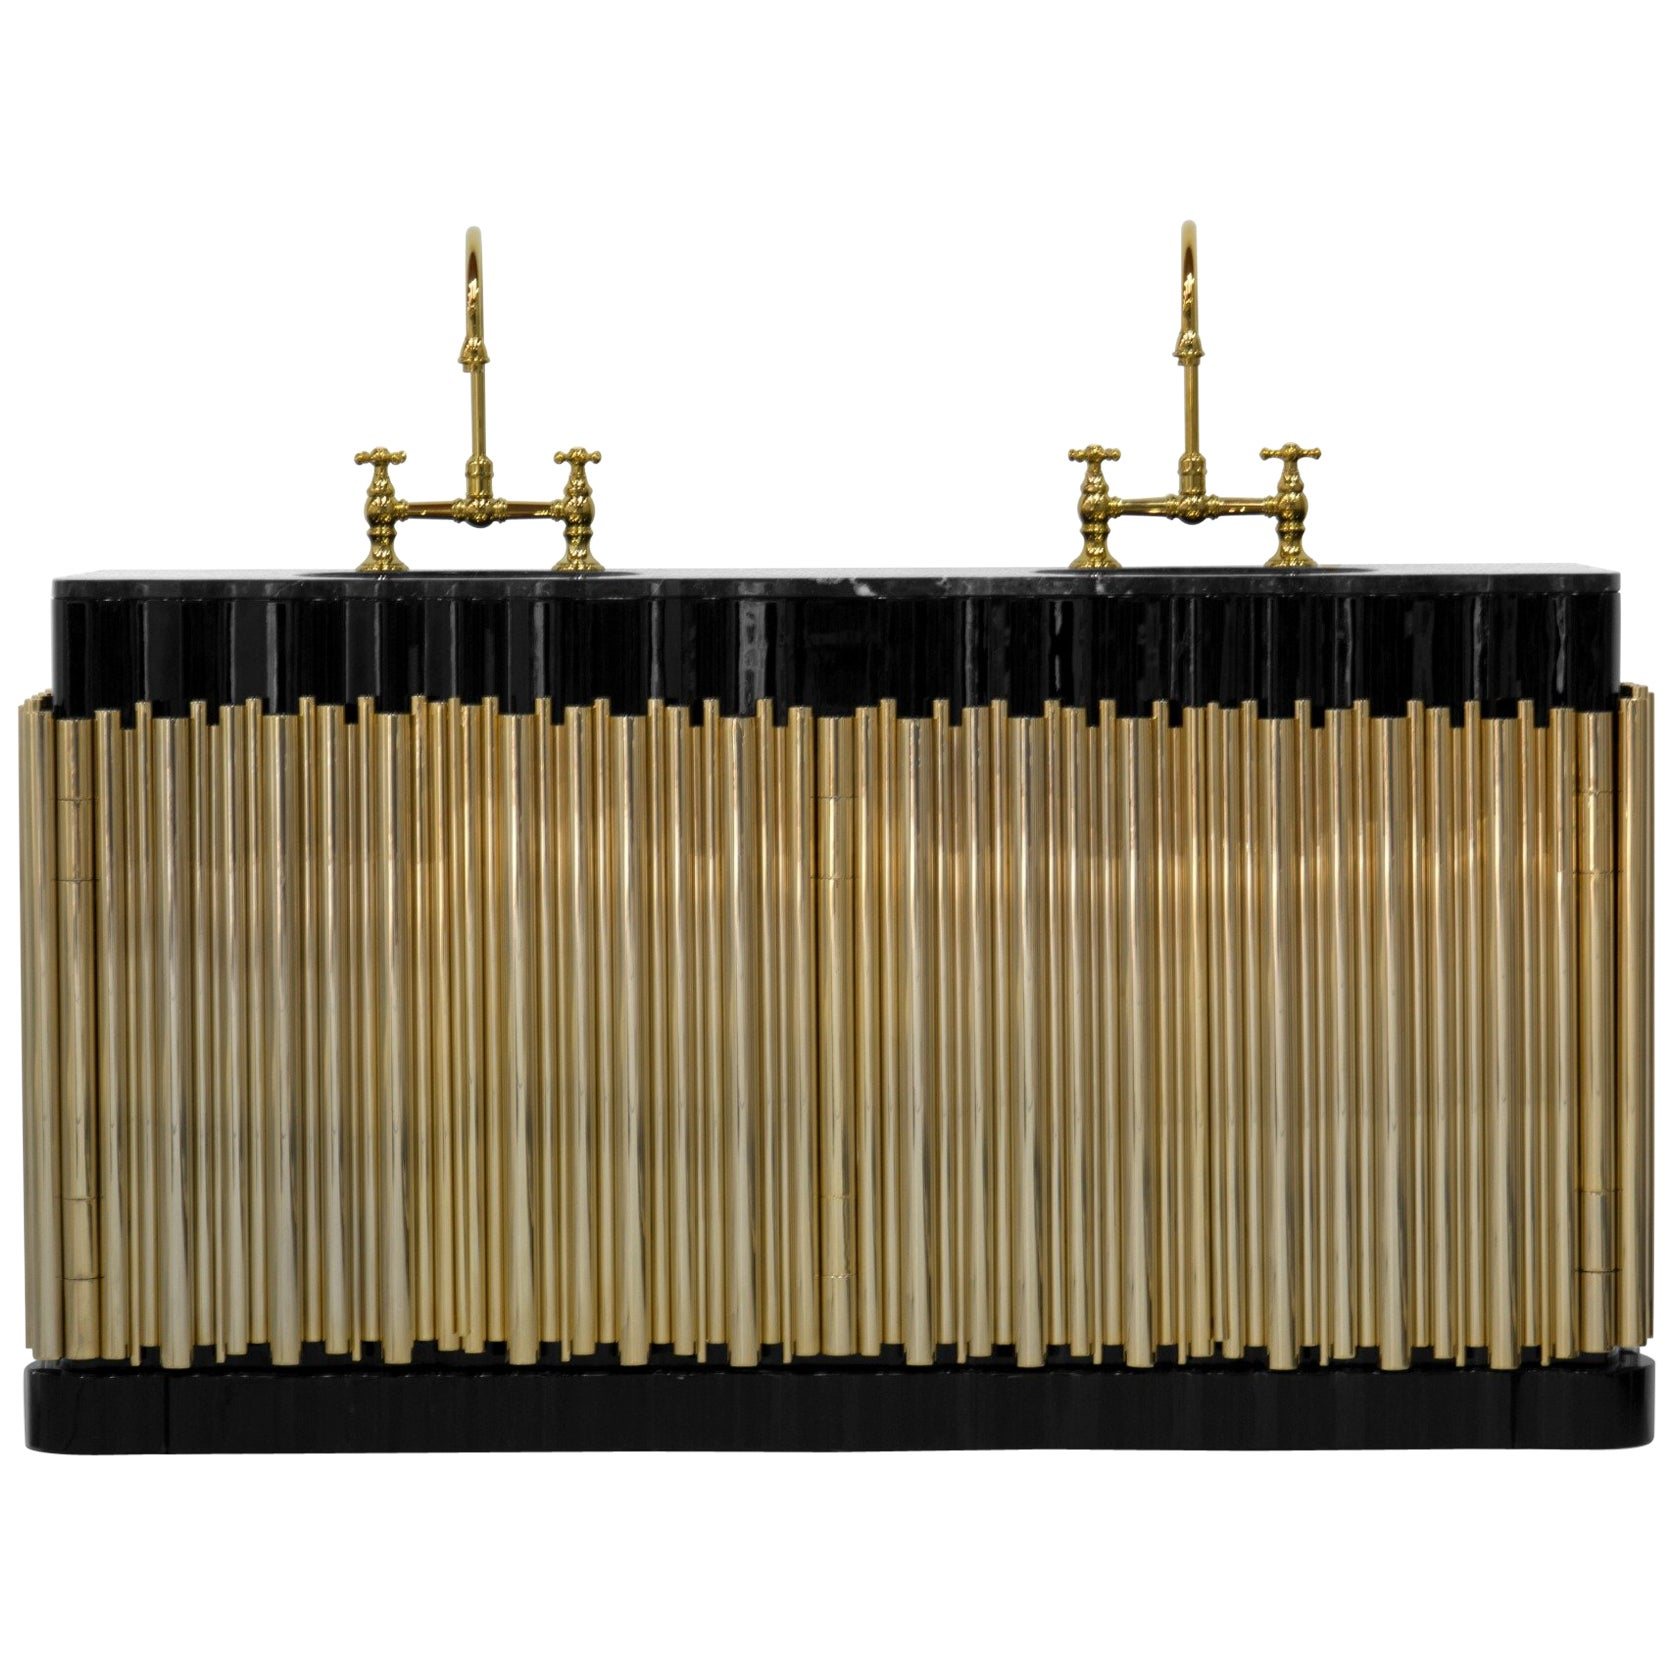 Symphony Washbasin in Black Marble and Gold-Plated Brass